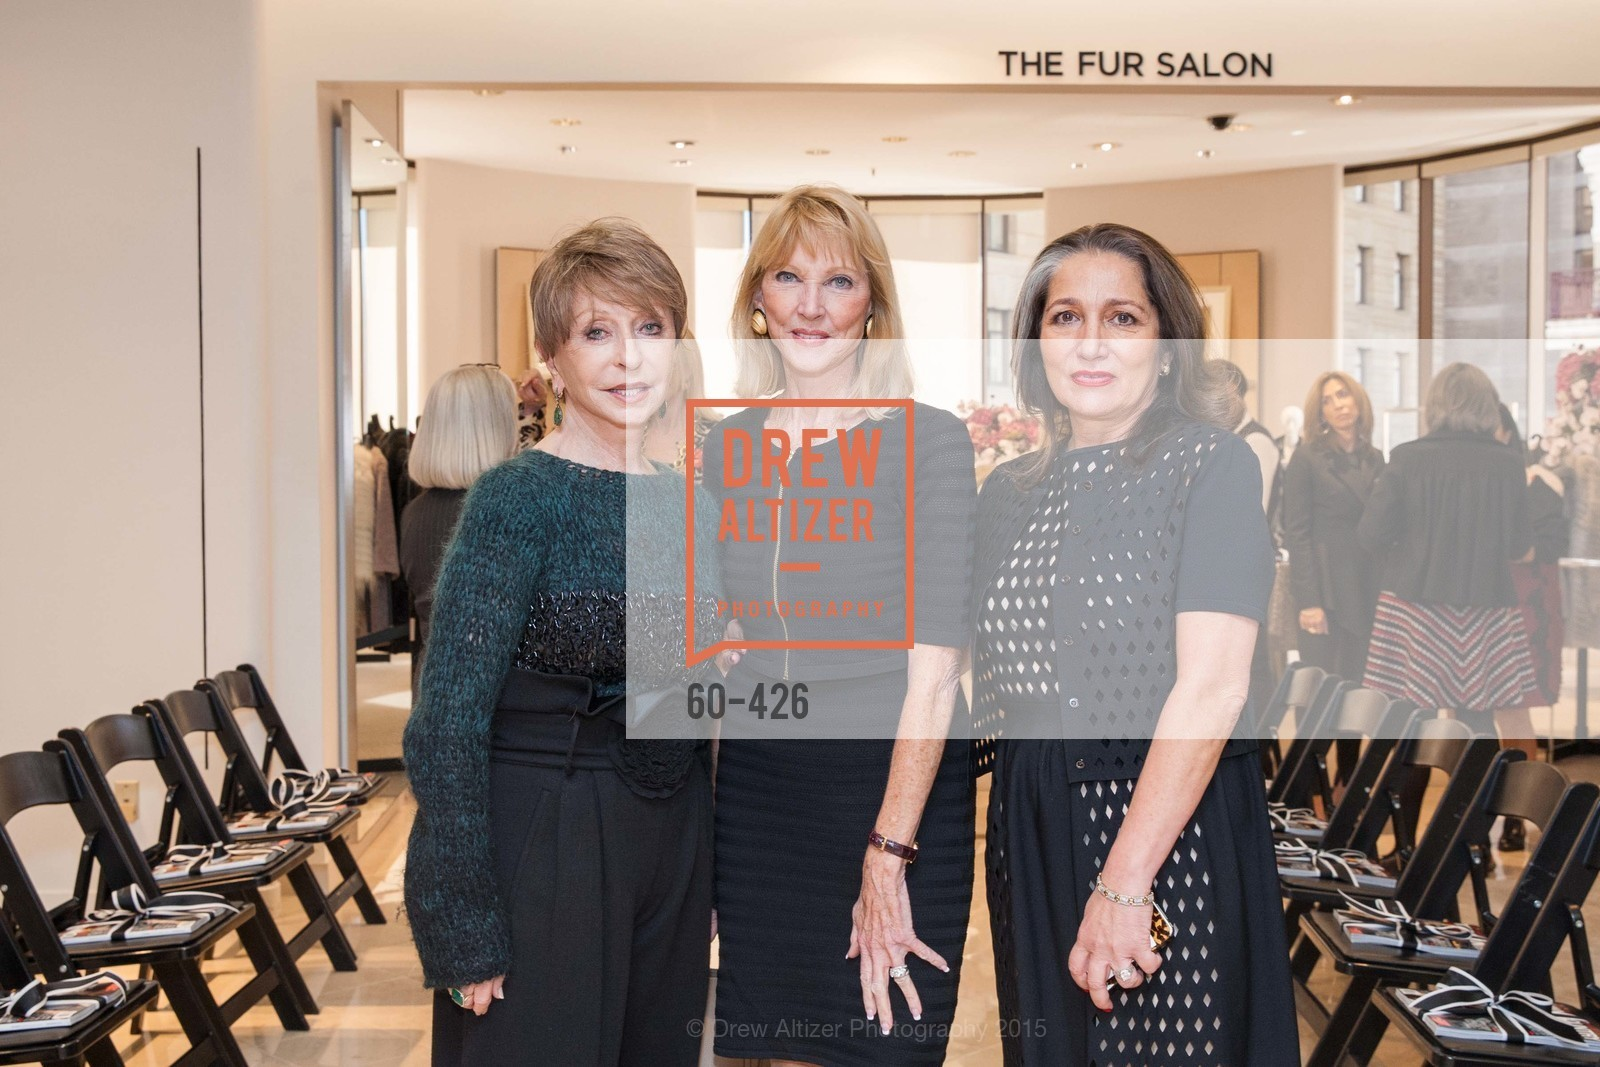 Roberta Sherman, Mary Lou Maier, Josephine Kathan, Rindi at Saks Fur Salon, Saks Fifth Avenue, Fur Salon, October 29th, 2015,Drew Altizer, Drew Altizer Photography, full-service agency, private events, San Francisco photographer, photographer california